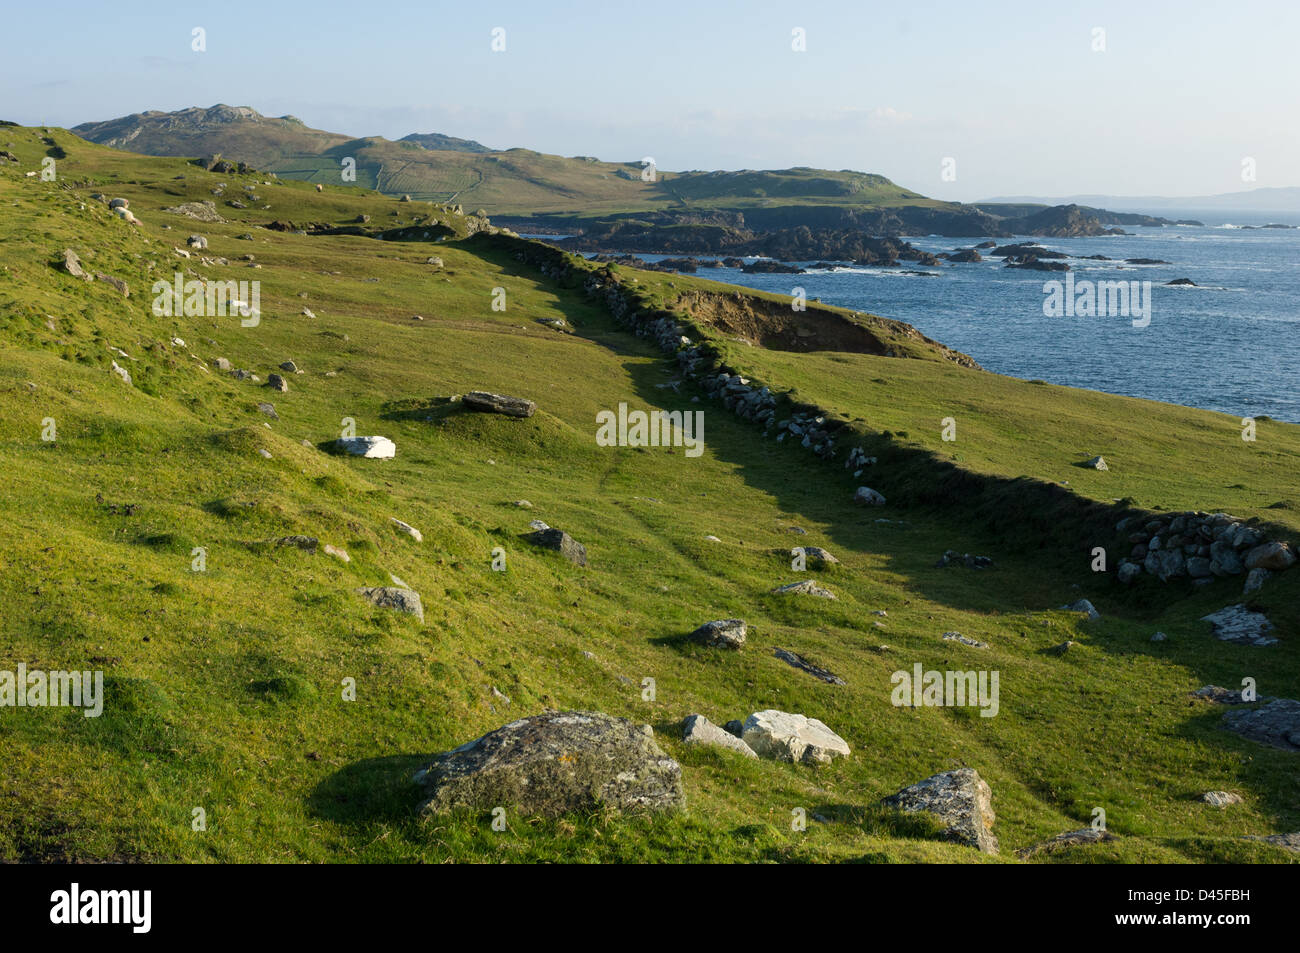 Remnants of stone age fortification on top of cliffs on the rugged coastline of Achill Island, Westport, County - Stock Image